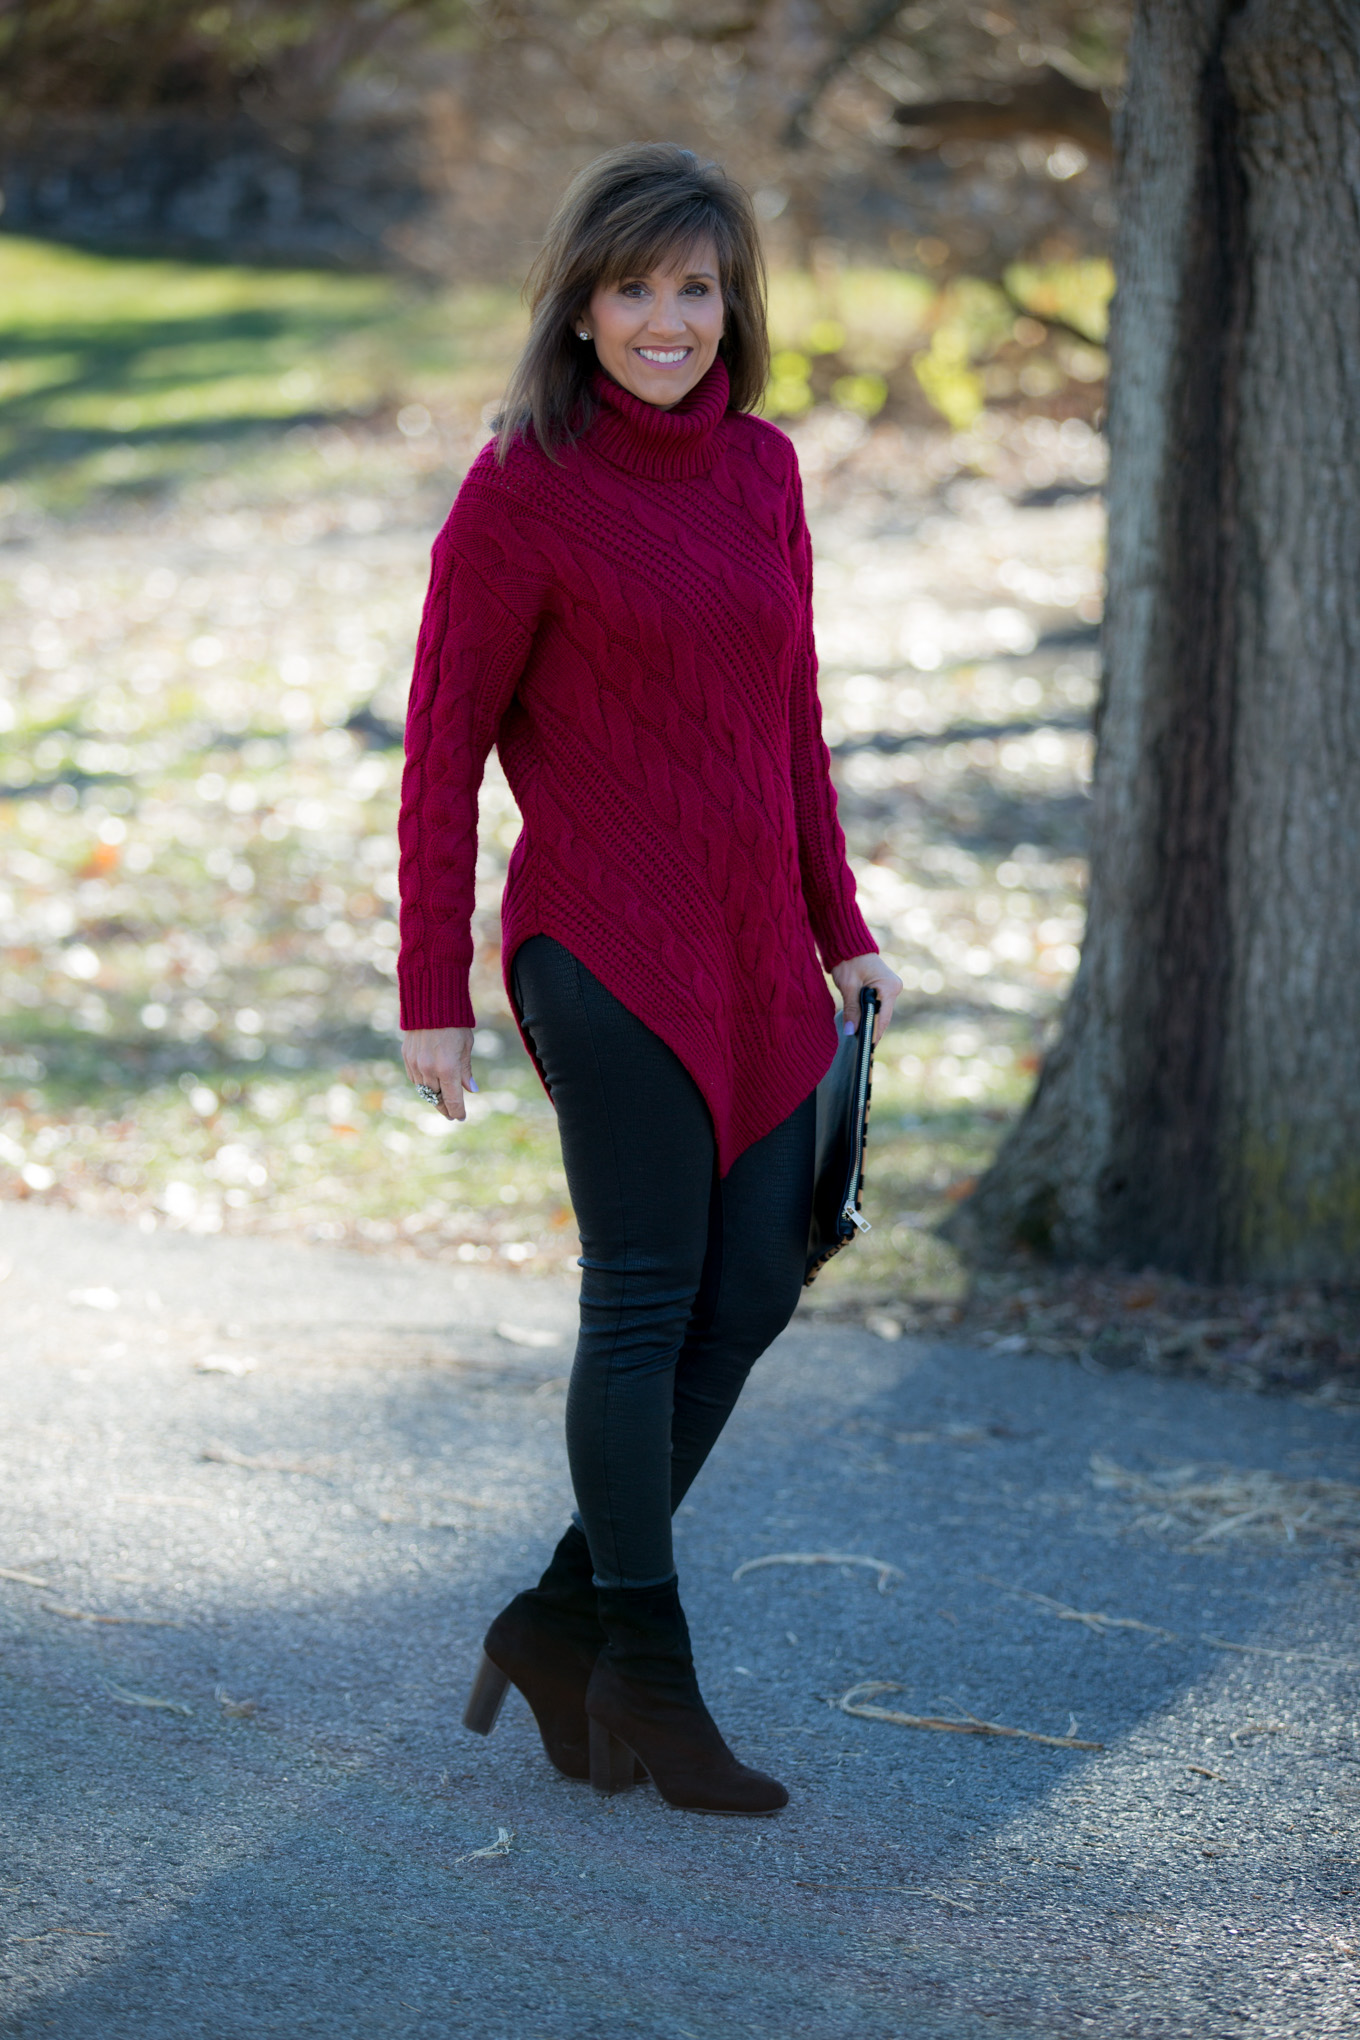 Fashion blogger, Cyndi Spivey, styling a chunky knit sweater from Glamour Farms Boutique.